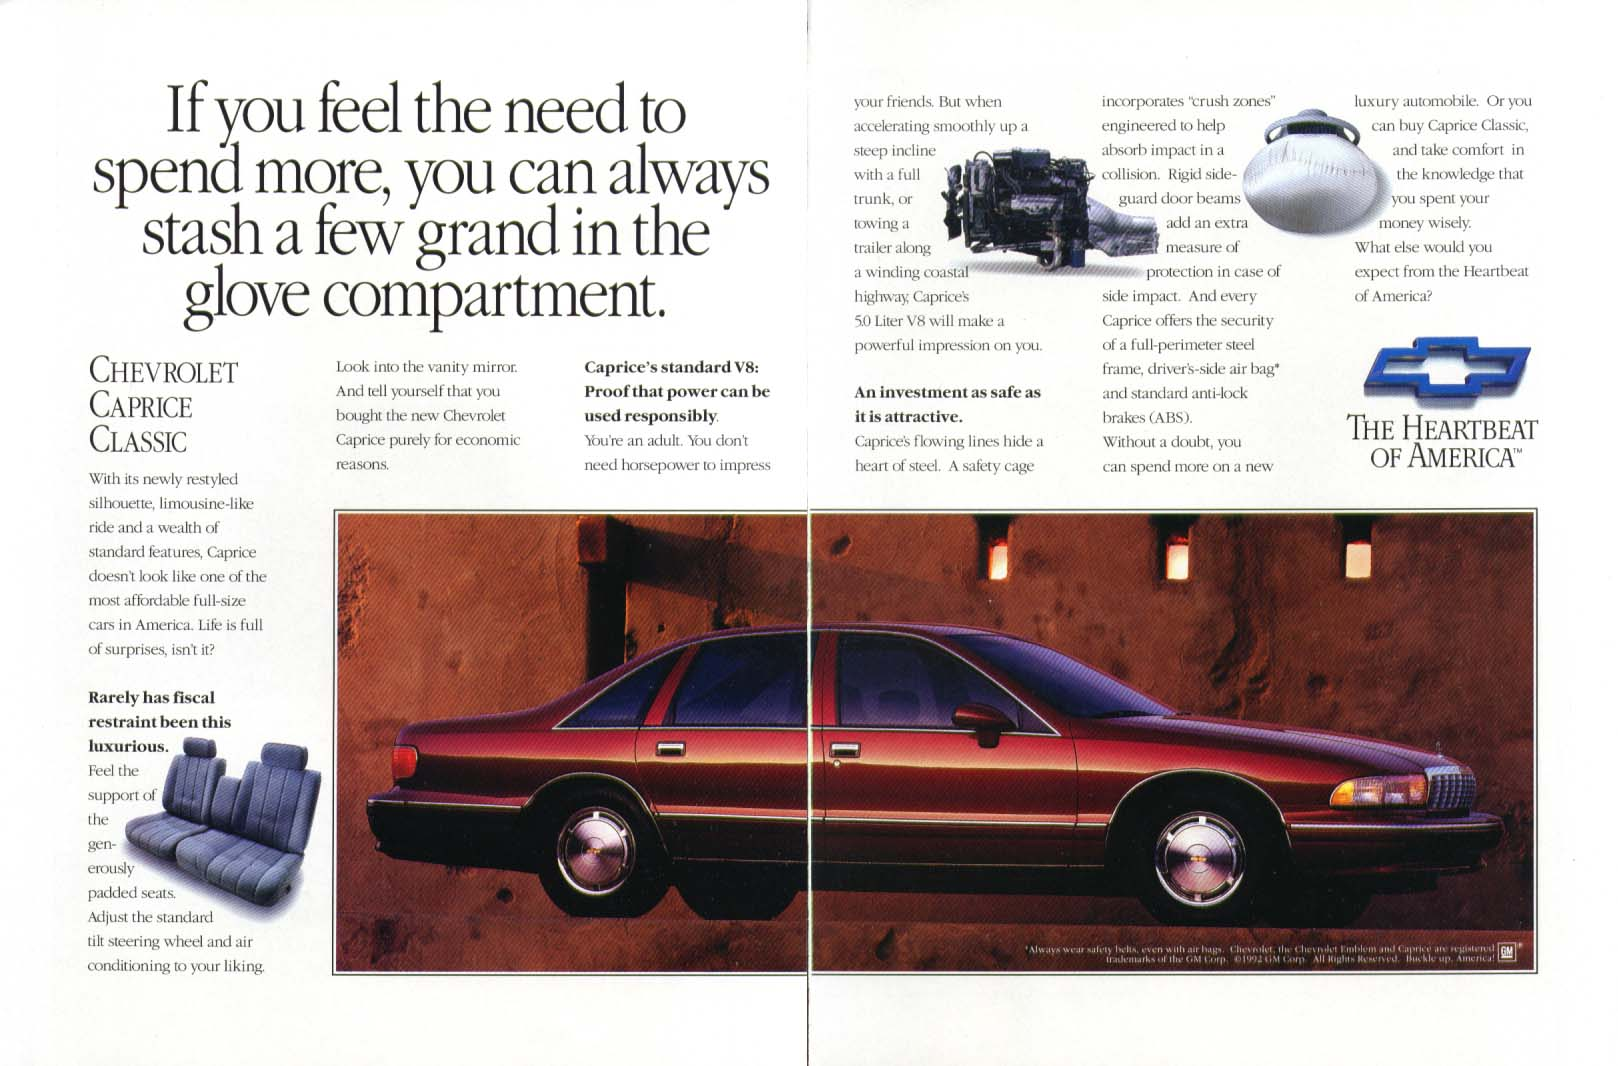 Chevrolet Caprice Classic feel the need ad 1993